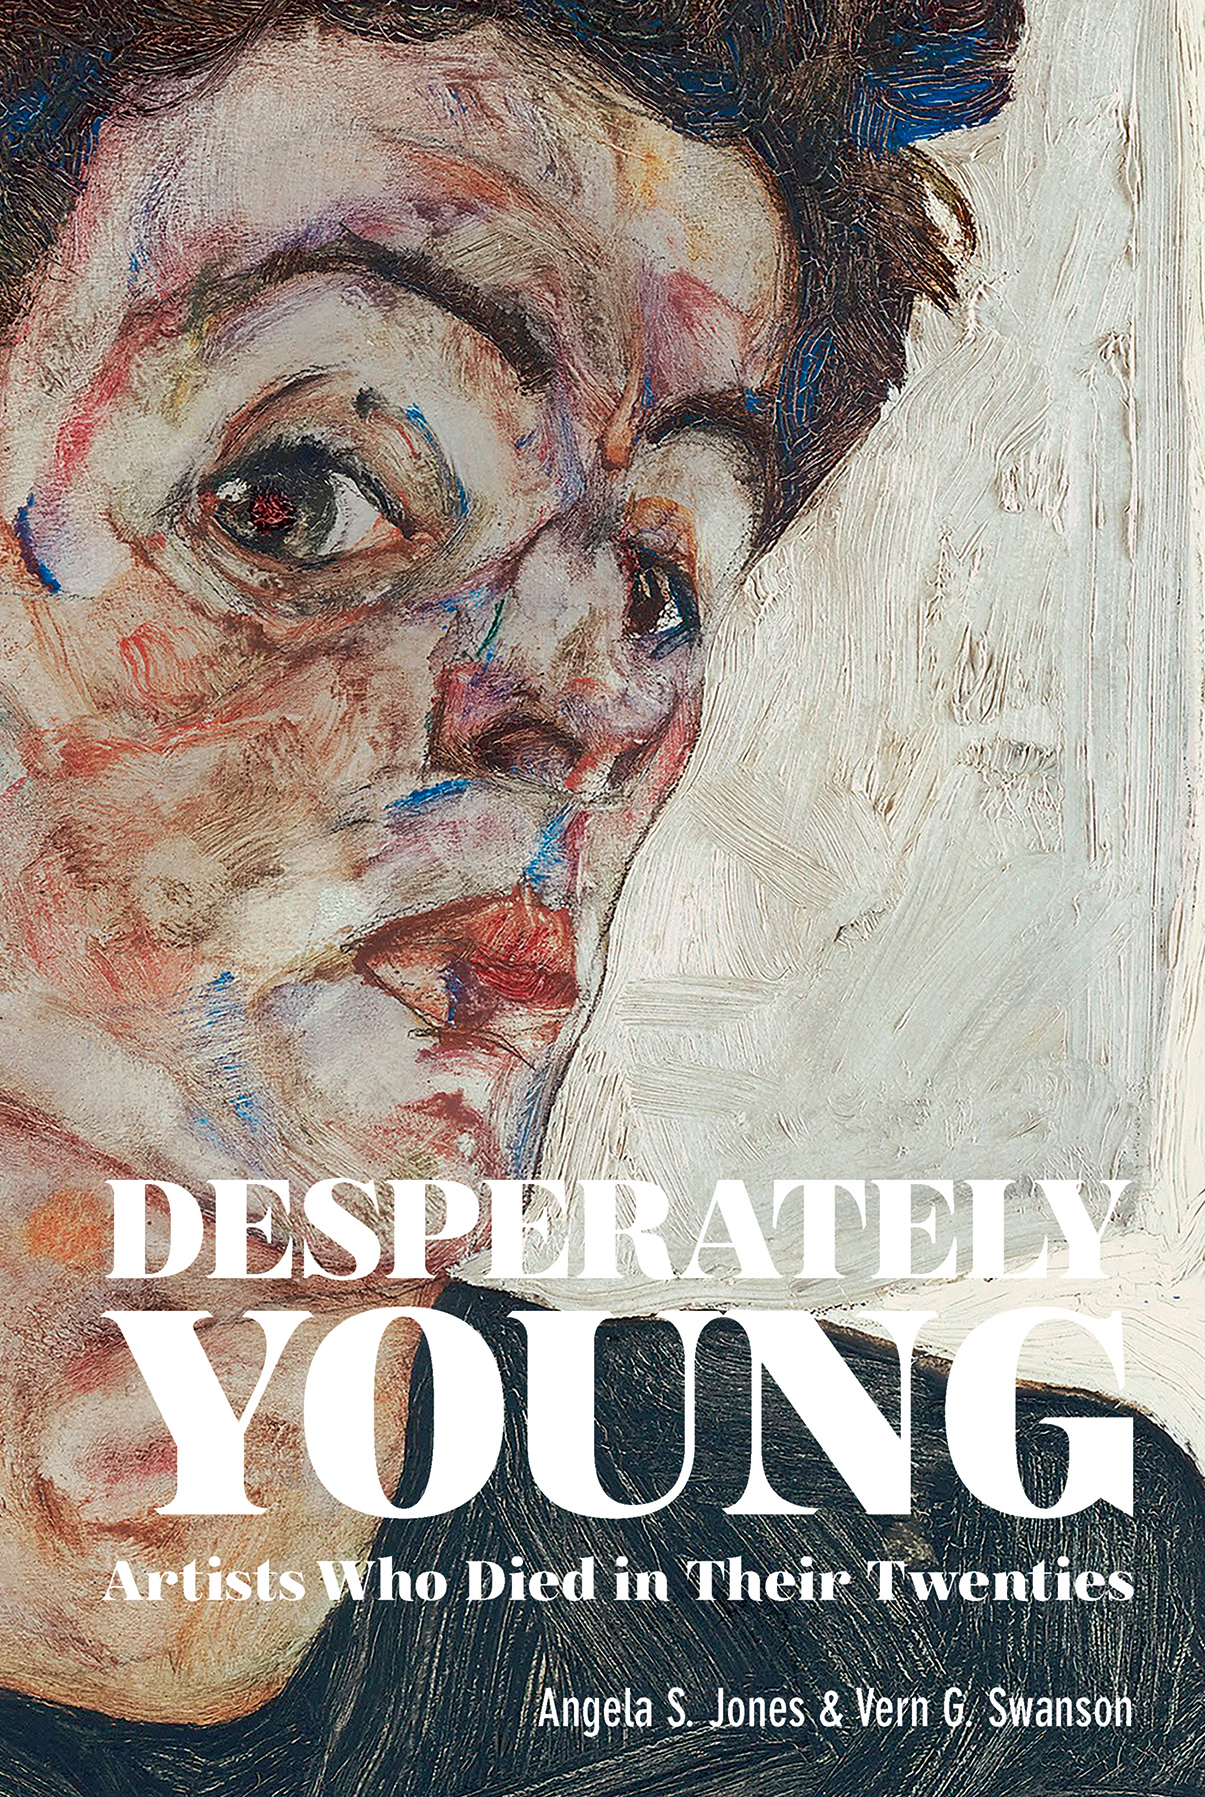 Desperately Young - first book (ACC Art Books) to celebrate great artists who died before their time.